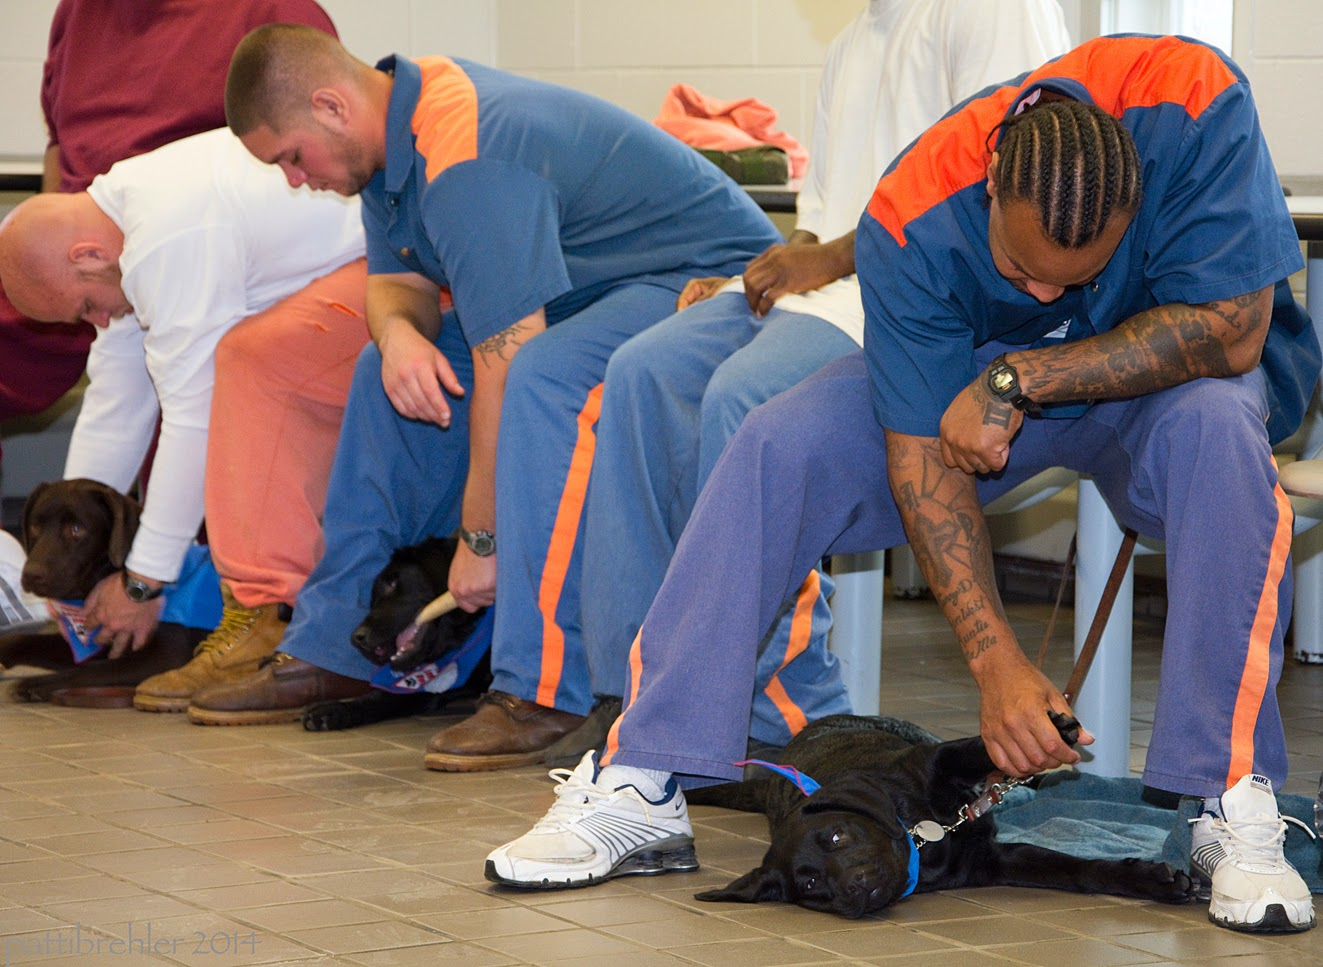 Three men sit on stools and are leaning forward and looking at the two black lab puppies and one chocolate lab puppy  lying on the floor between their legs. The man on the left is wearing a long sleeve white shirt and peach sweat pants, his hands are massaging the black lab's shoulders. The puppy is looking at the camera. The man in the middle is wearing the blue prison uniform and is reaching down to the black lab puppy at his feet with his left hand, which is holding an antler. His right arm is resting on his right knee. The african american man on the right is wearing the blue prison uniform and is bent over with his left forearm on his left knee. He is reaching down with his right hand and holding the left front paw of a small black lab at his feet. The labe is lying on her right side facing the camear.